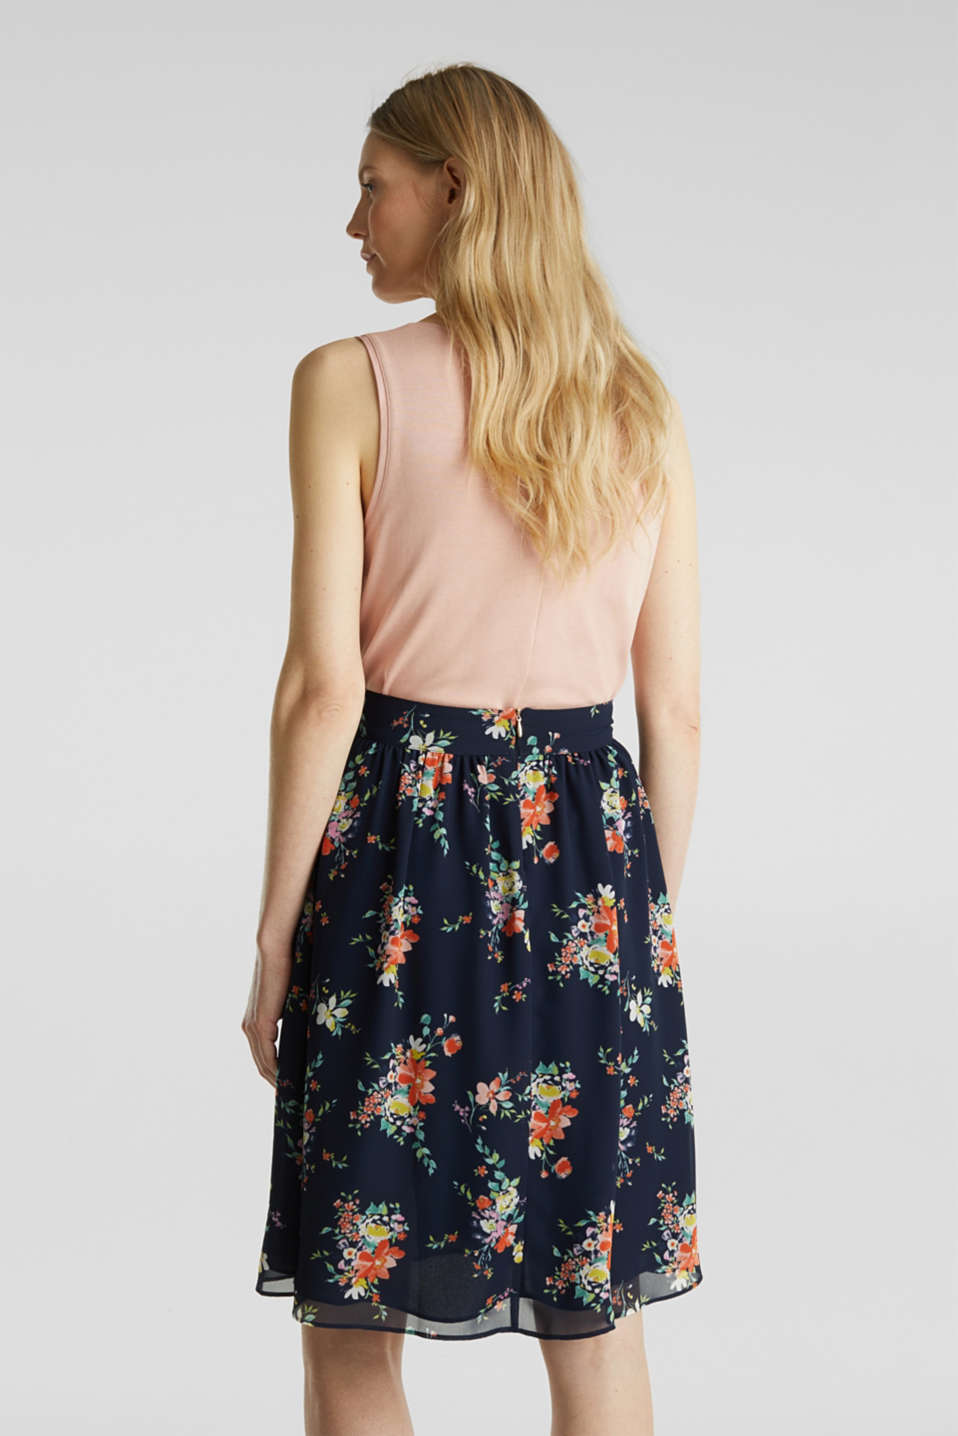 Skirt in floral crêpe chiffon, NAVY 4, detail image number 3